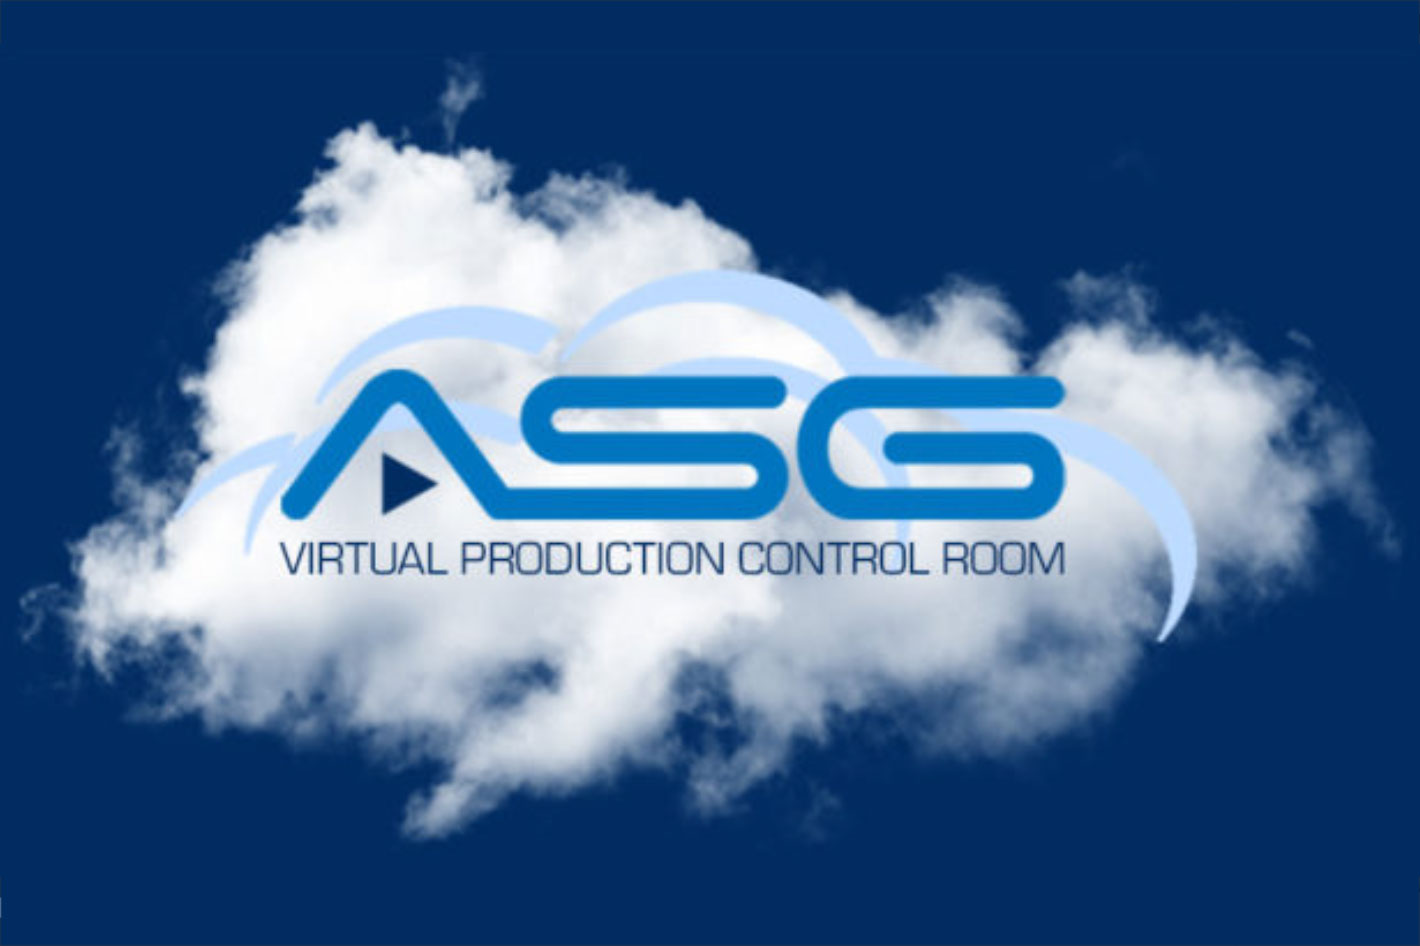 ASG unveils new Virtual Production Control Room